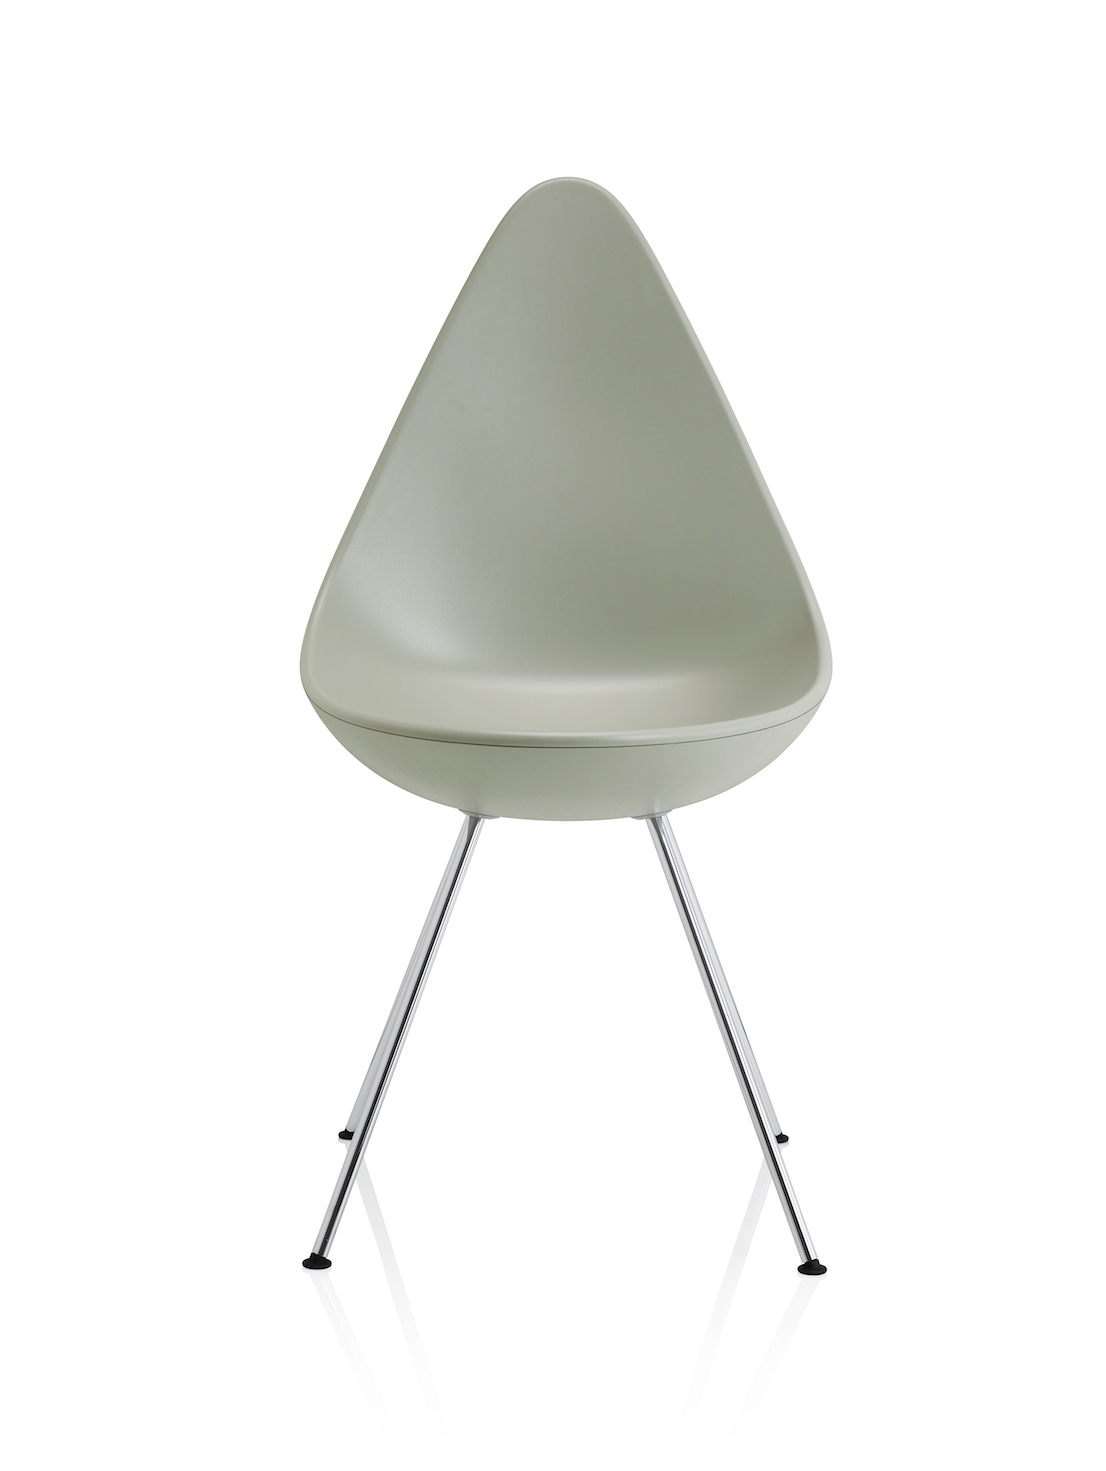 Drop Chair, design di Arne Jacobsen.